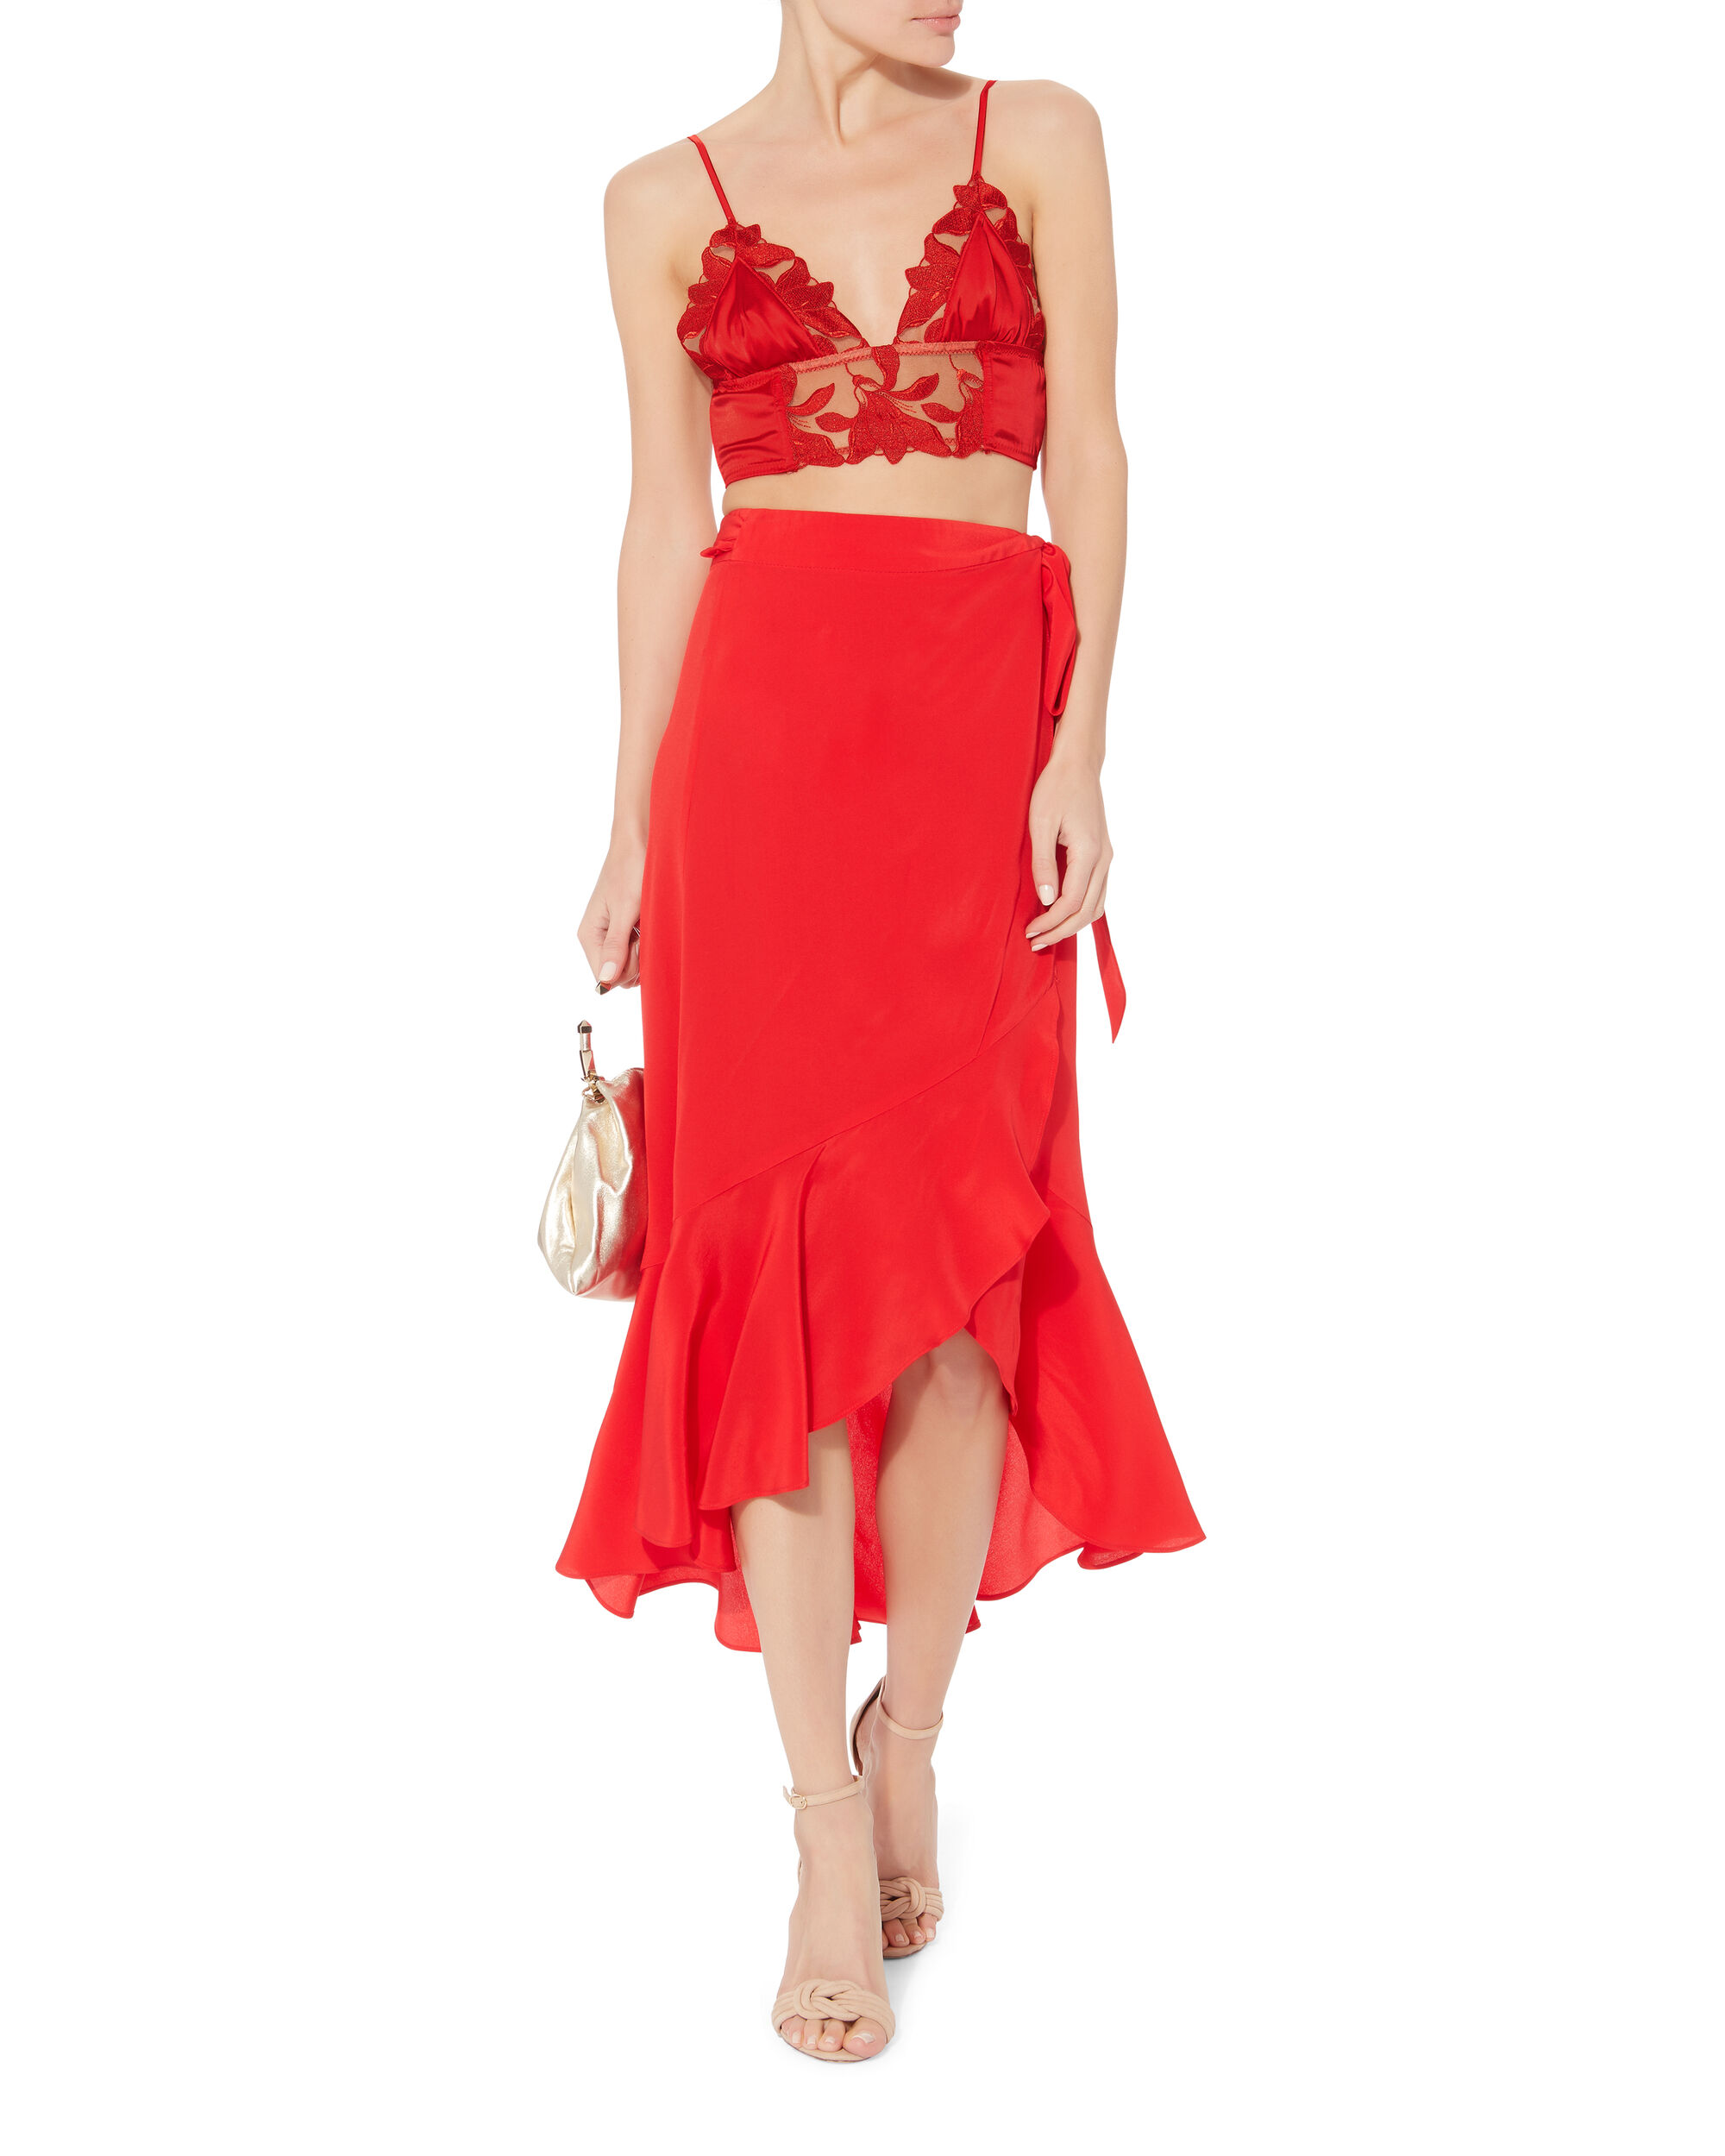 Lily Lace Longline Red Bra, RED, hi-res